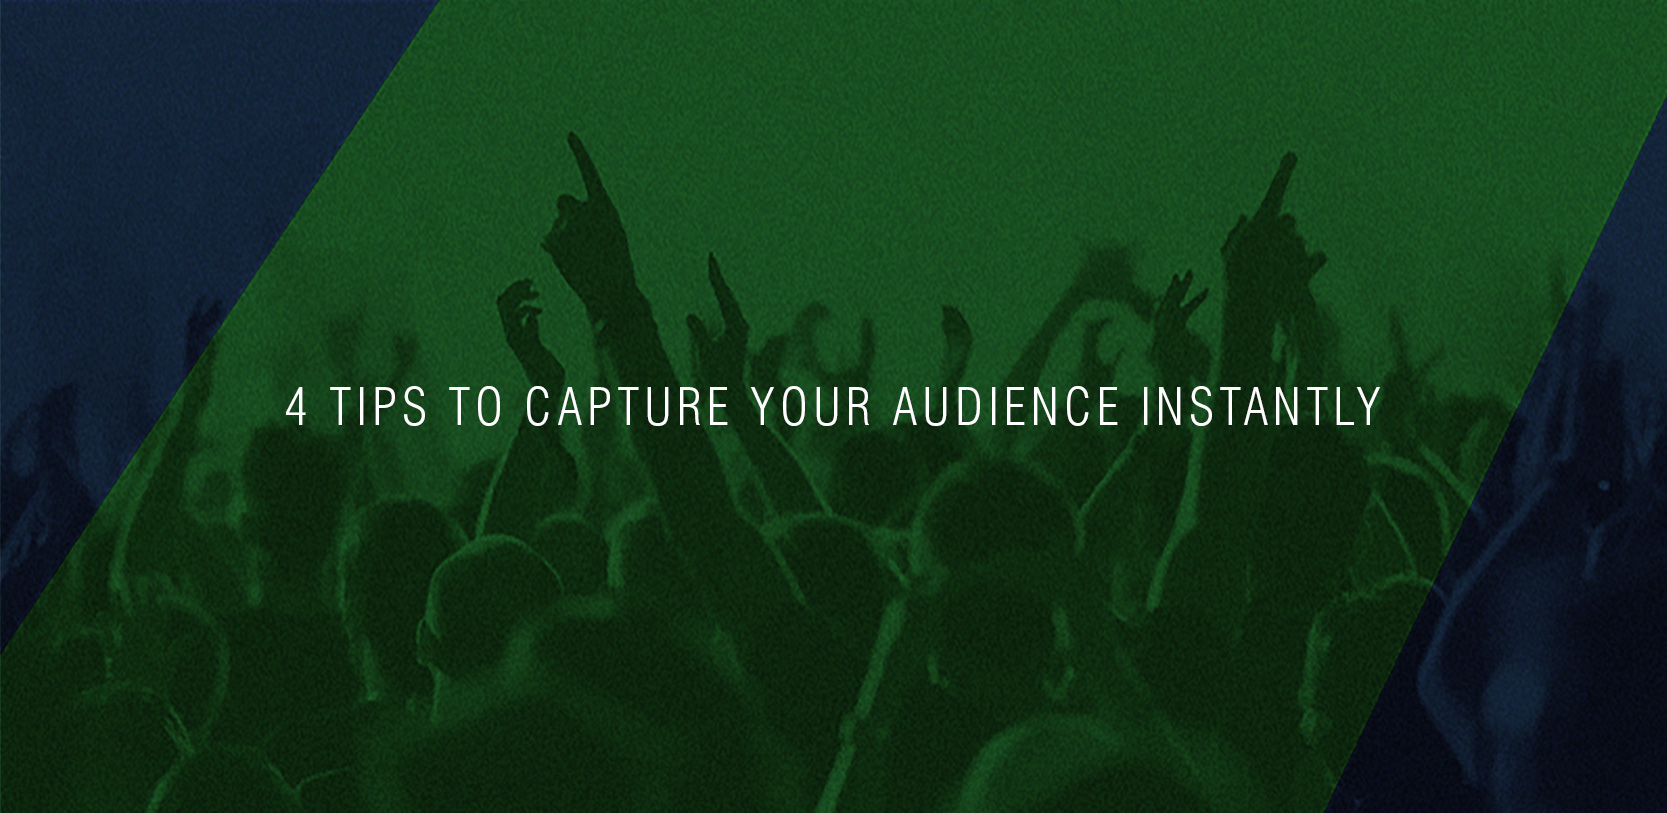 4 Tips to Capture Your Audience Instantly